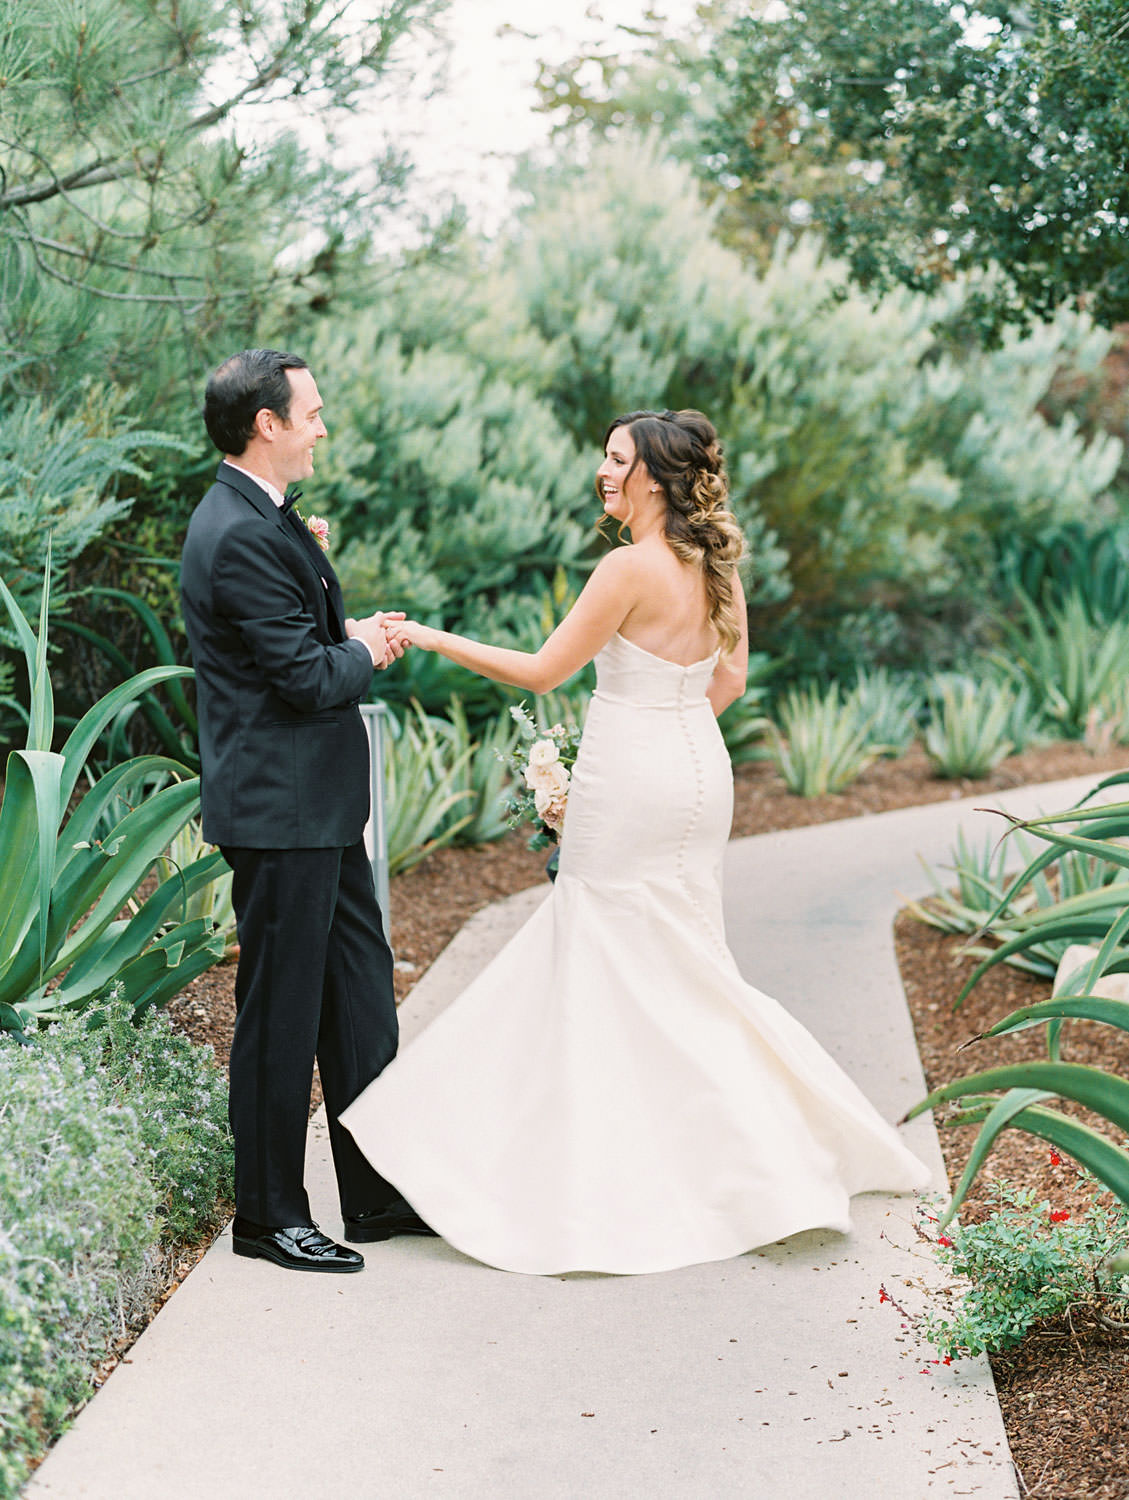 Bride in Anne Barge sweetheart gown dancing with groom in black tux at Green Acre Campus Pointe Wedding, film photo by Cavin Elizabeth Photography